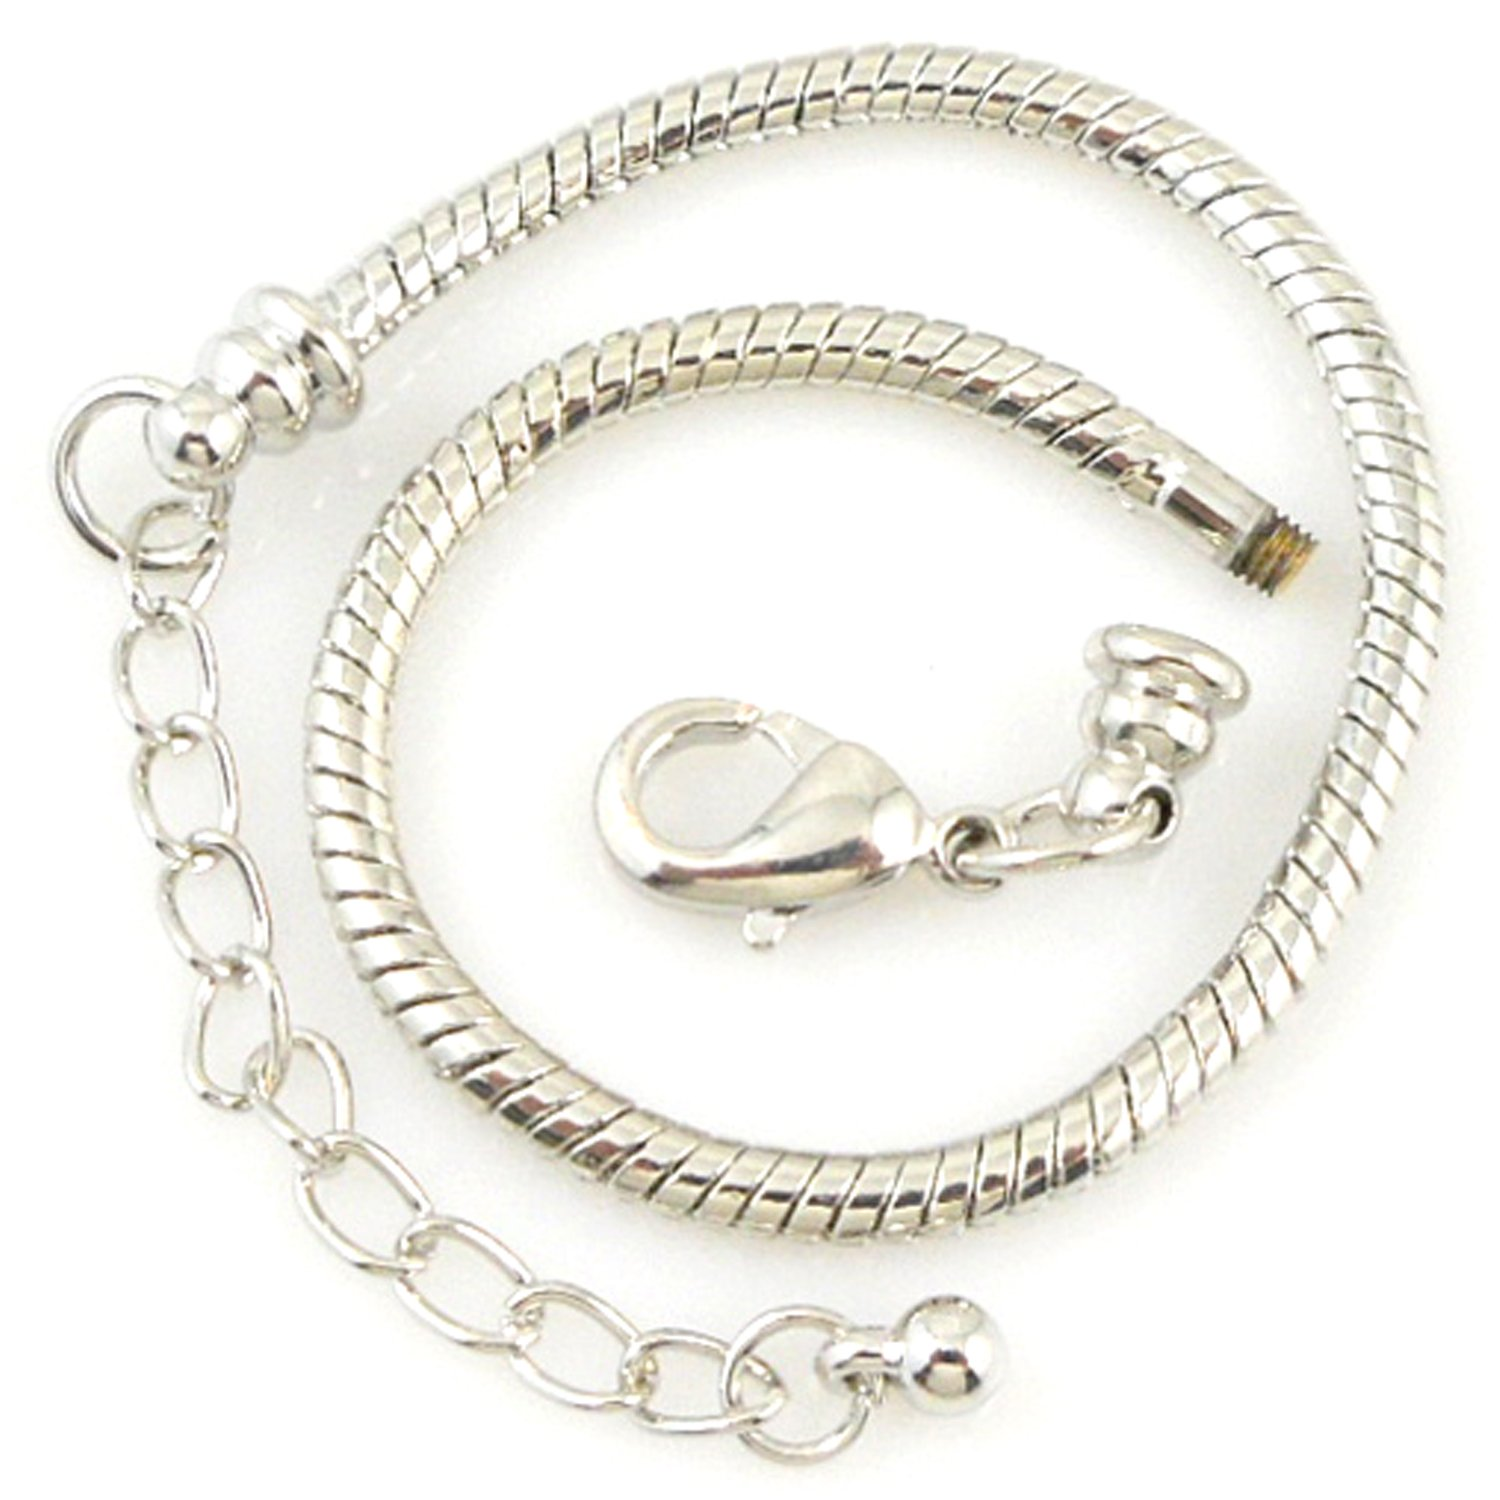 RUBYCA 5pcs White Silver Plated Lobster European Style Snake Chain Bracelet fit Charm Beads 8.7''